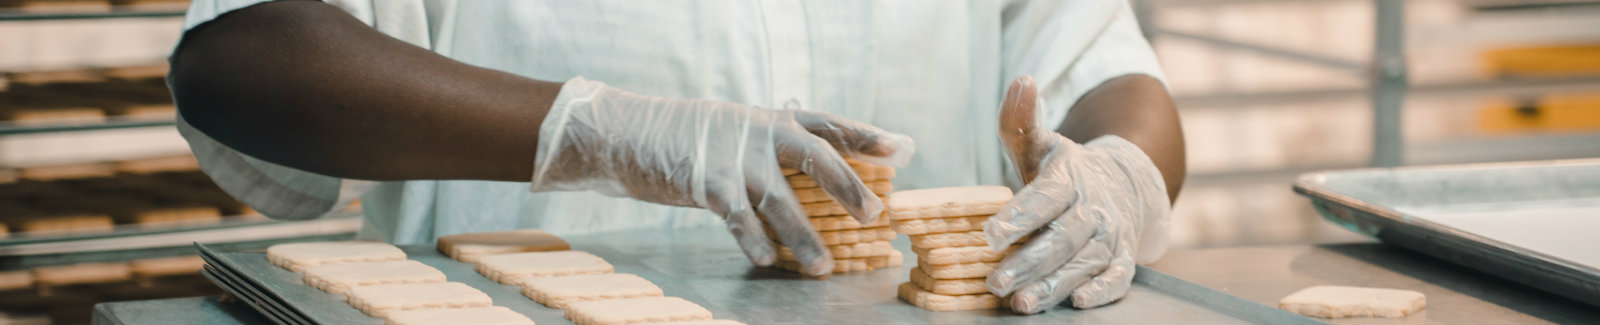 Baker stacking freshly baked sugar cookies on a tray